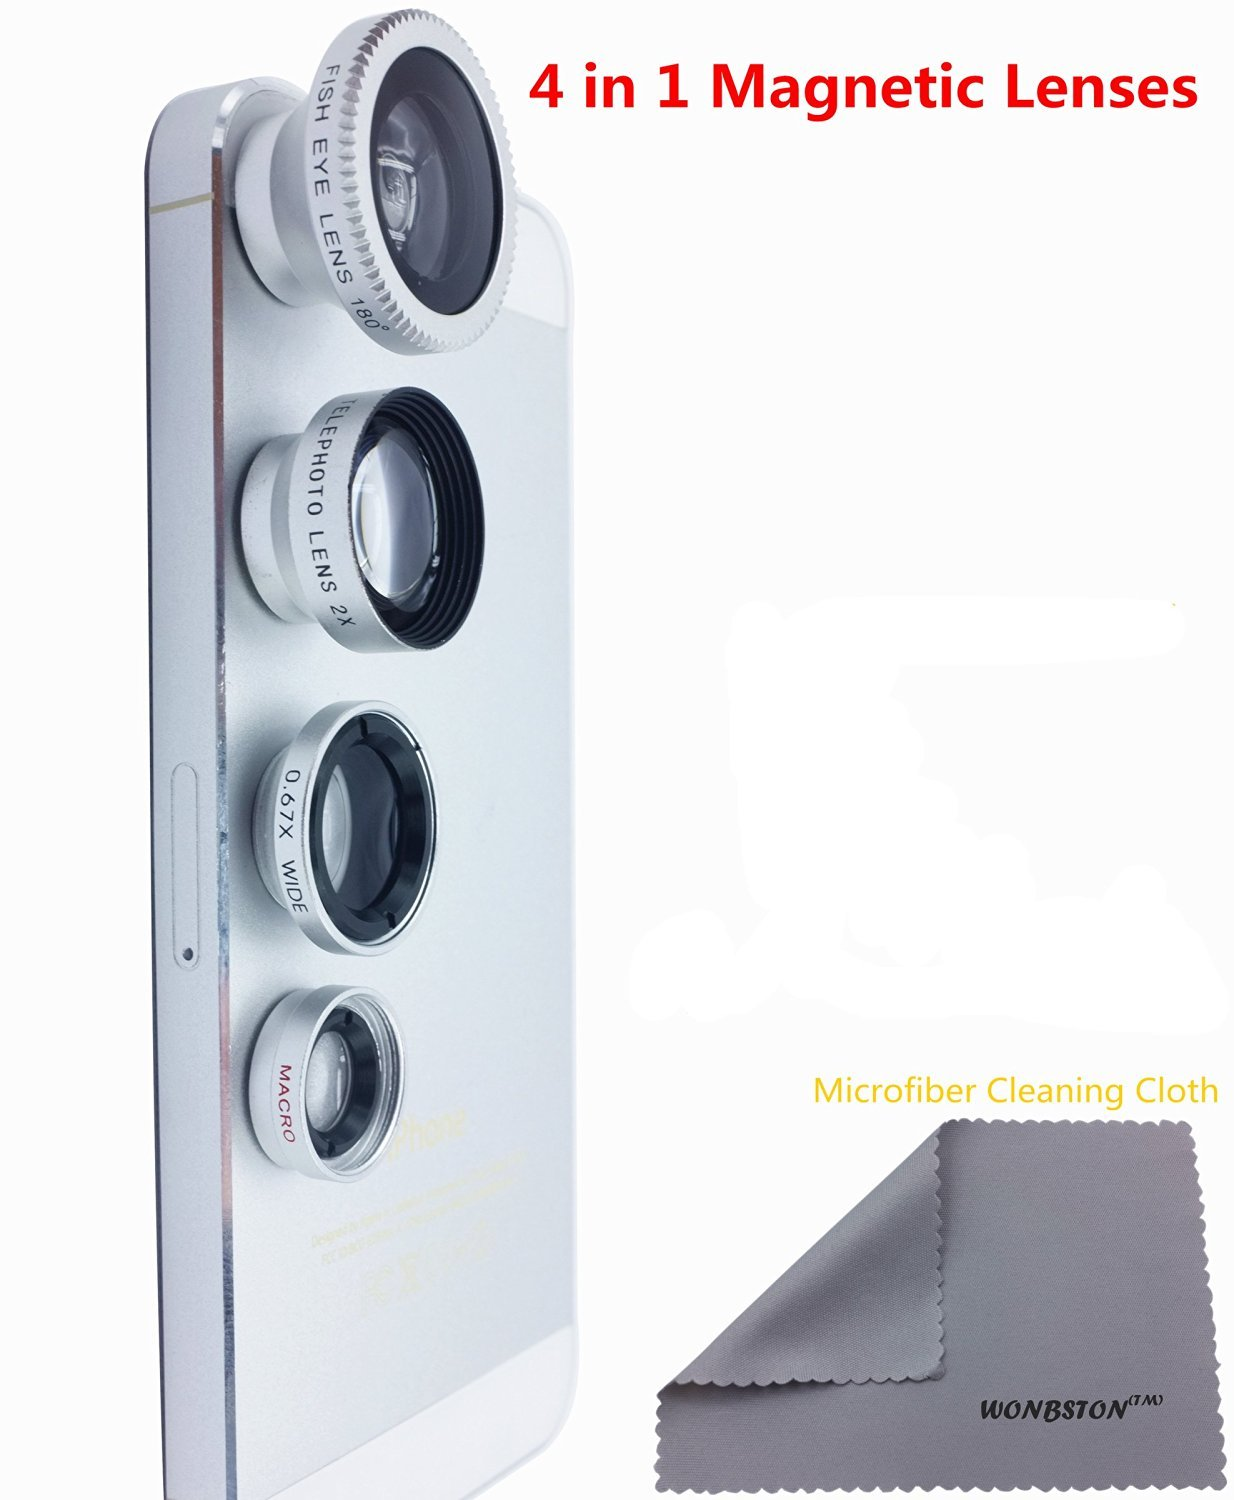 WONBSDOM 4 in 1 Universal Magnetic Detachable Fish Eye Lens - SILVER